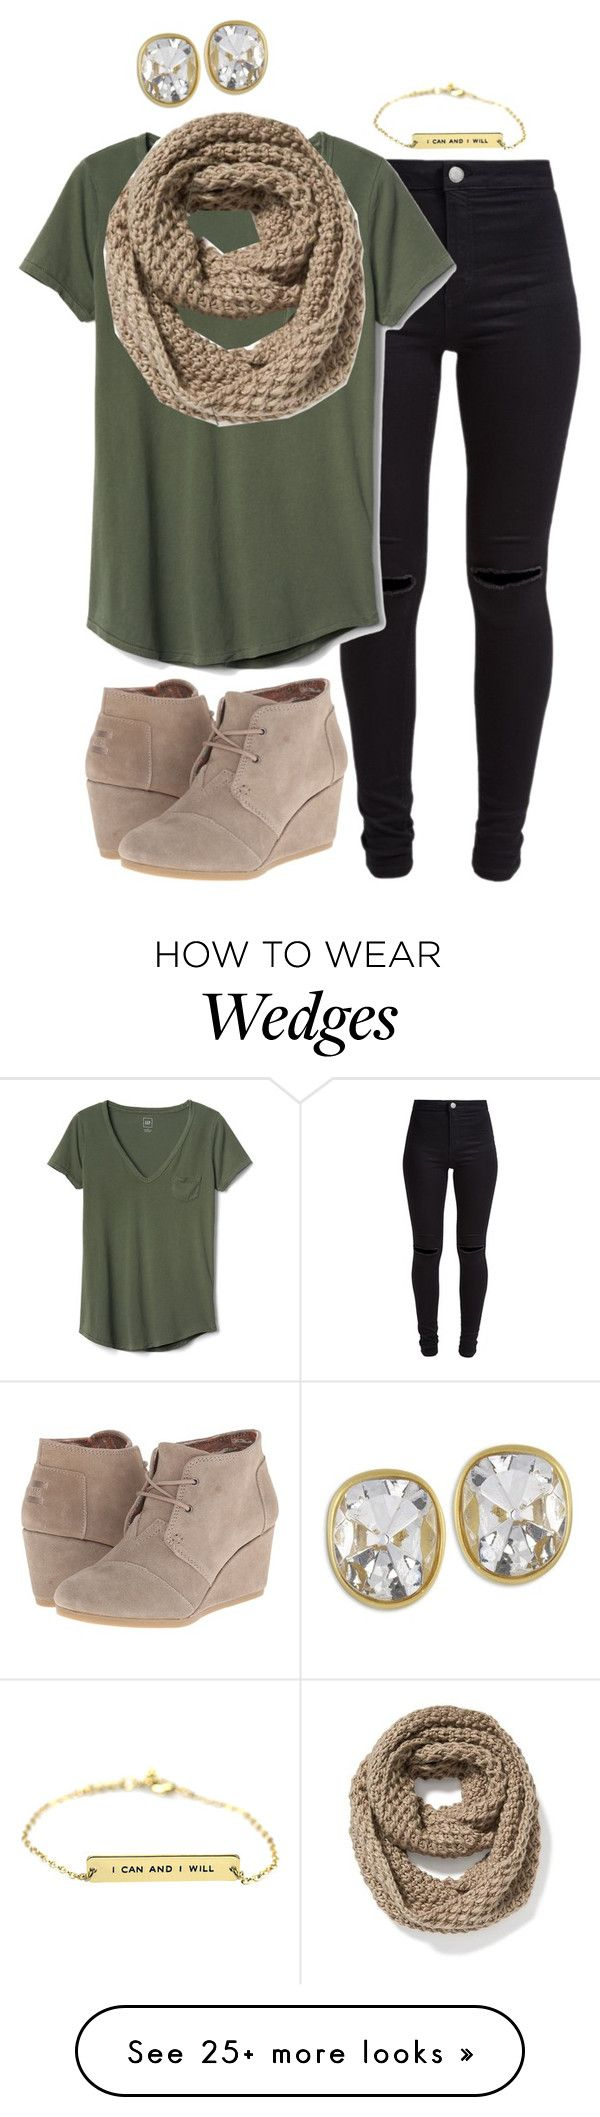 "Simplicity. ""Untitled #769"" by lsteckbauer on Polyvore featuring New Look, Gap, Old Navy, TOMS and Kenneth Jay Lane"